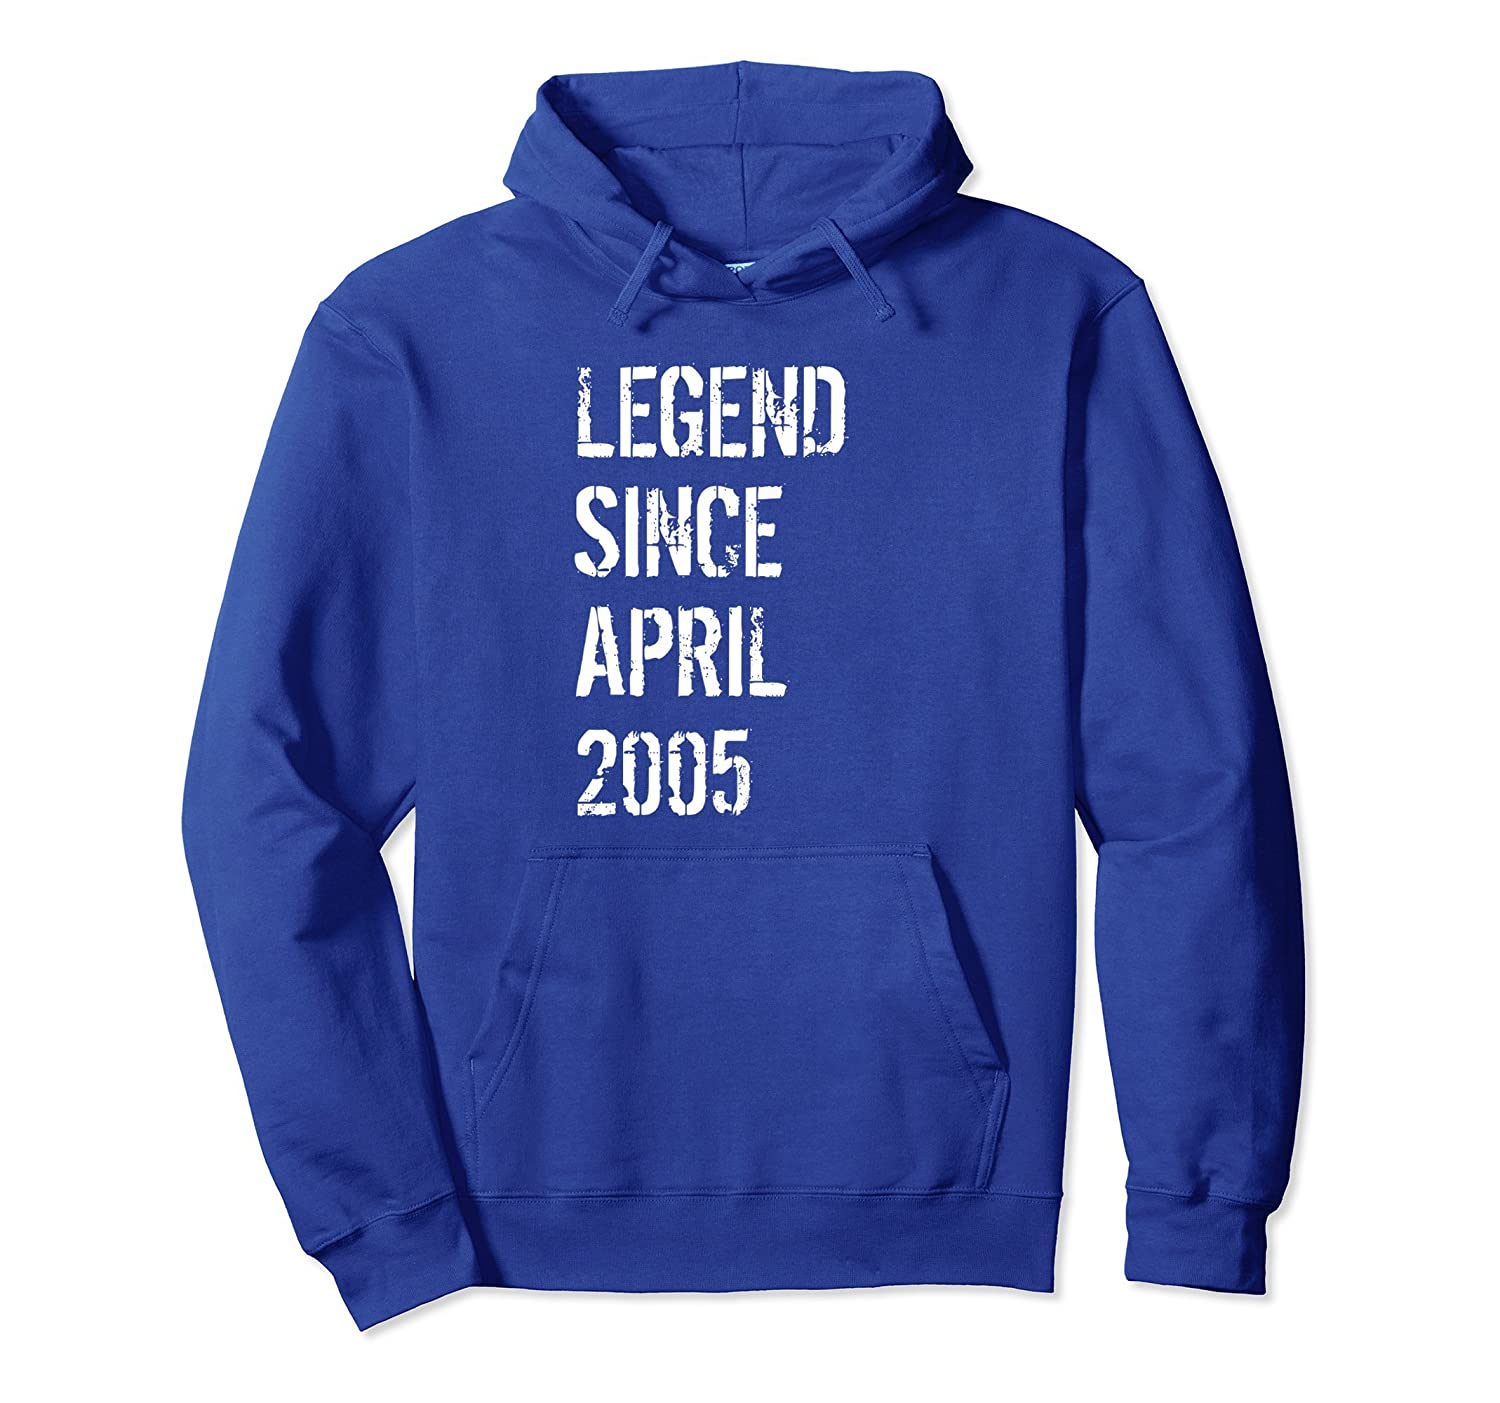 13th Birthday Gift Hoodie for Boys & Girls Born April 2005-ah my shirt one gift